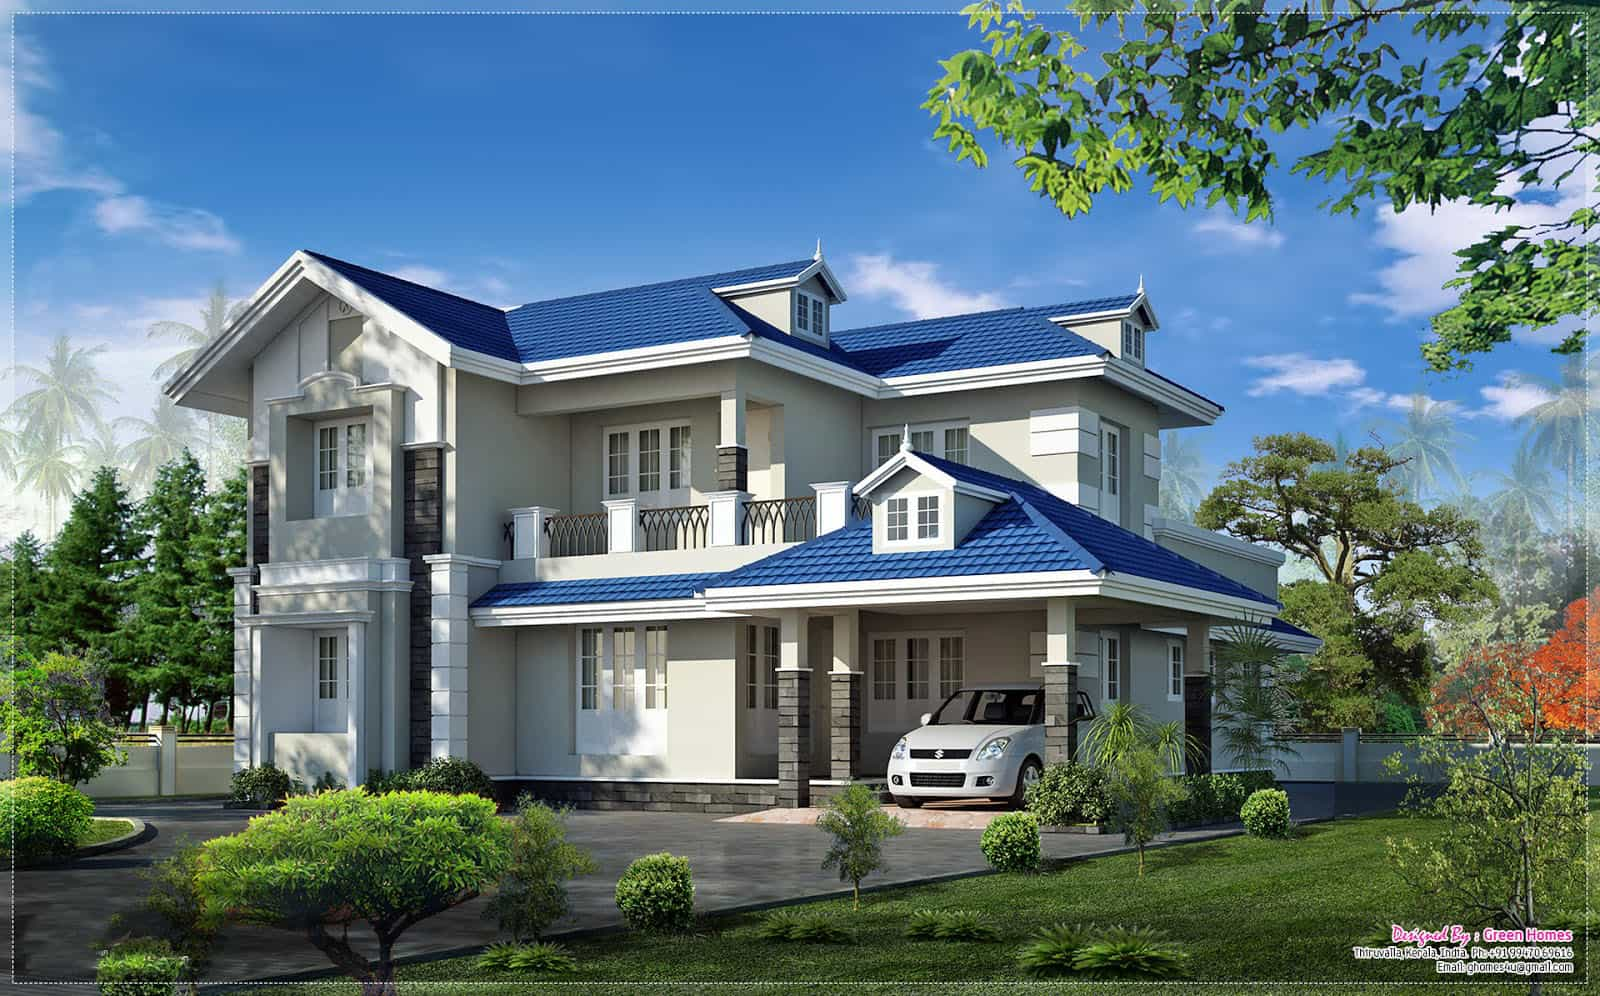 Small house plans in kerala 3 bedroom keralahouseplanner for Small house images in kerala